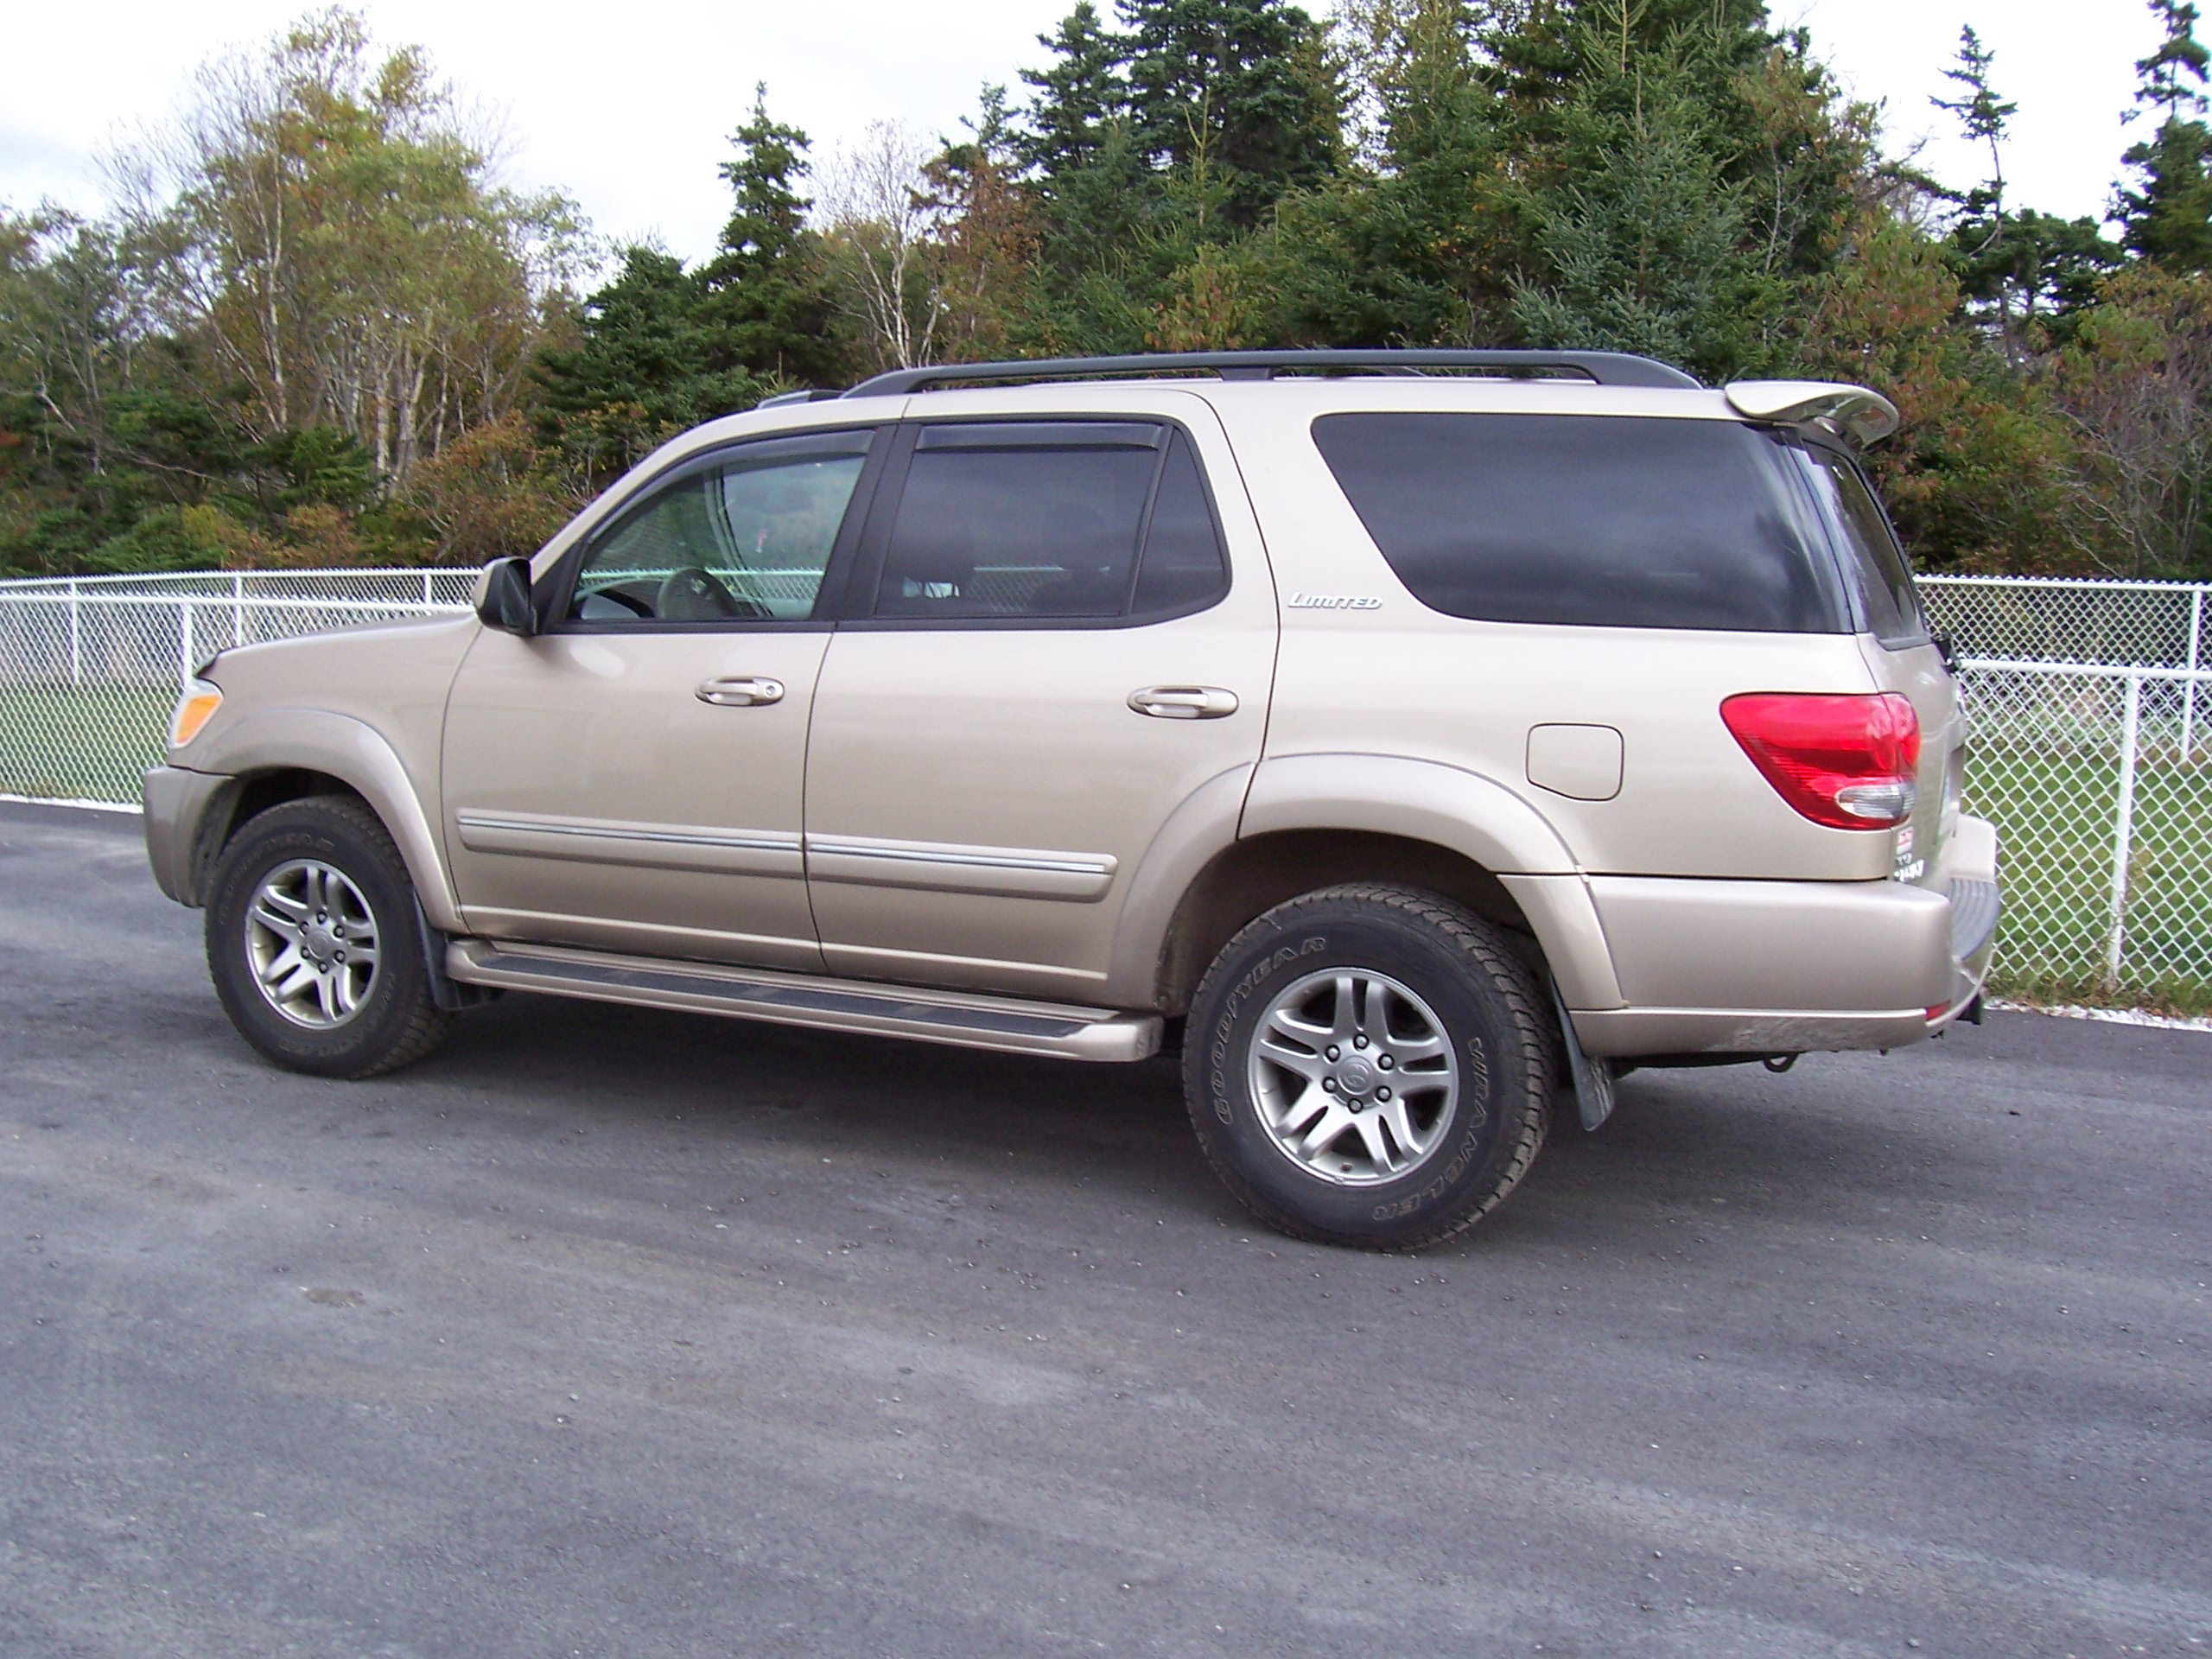 Parts For Toyota Sequoia 2005